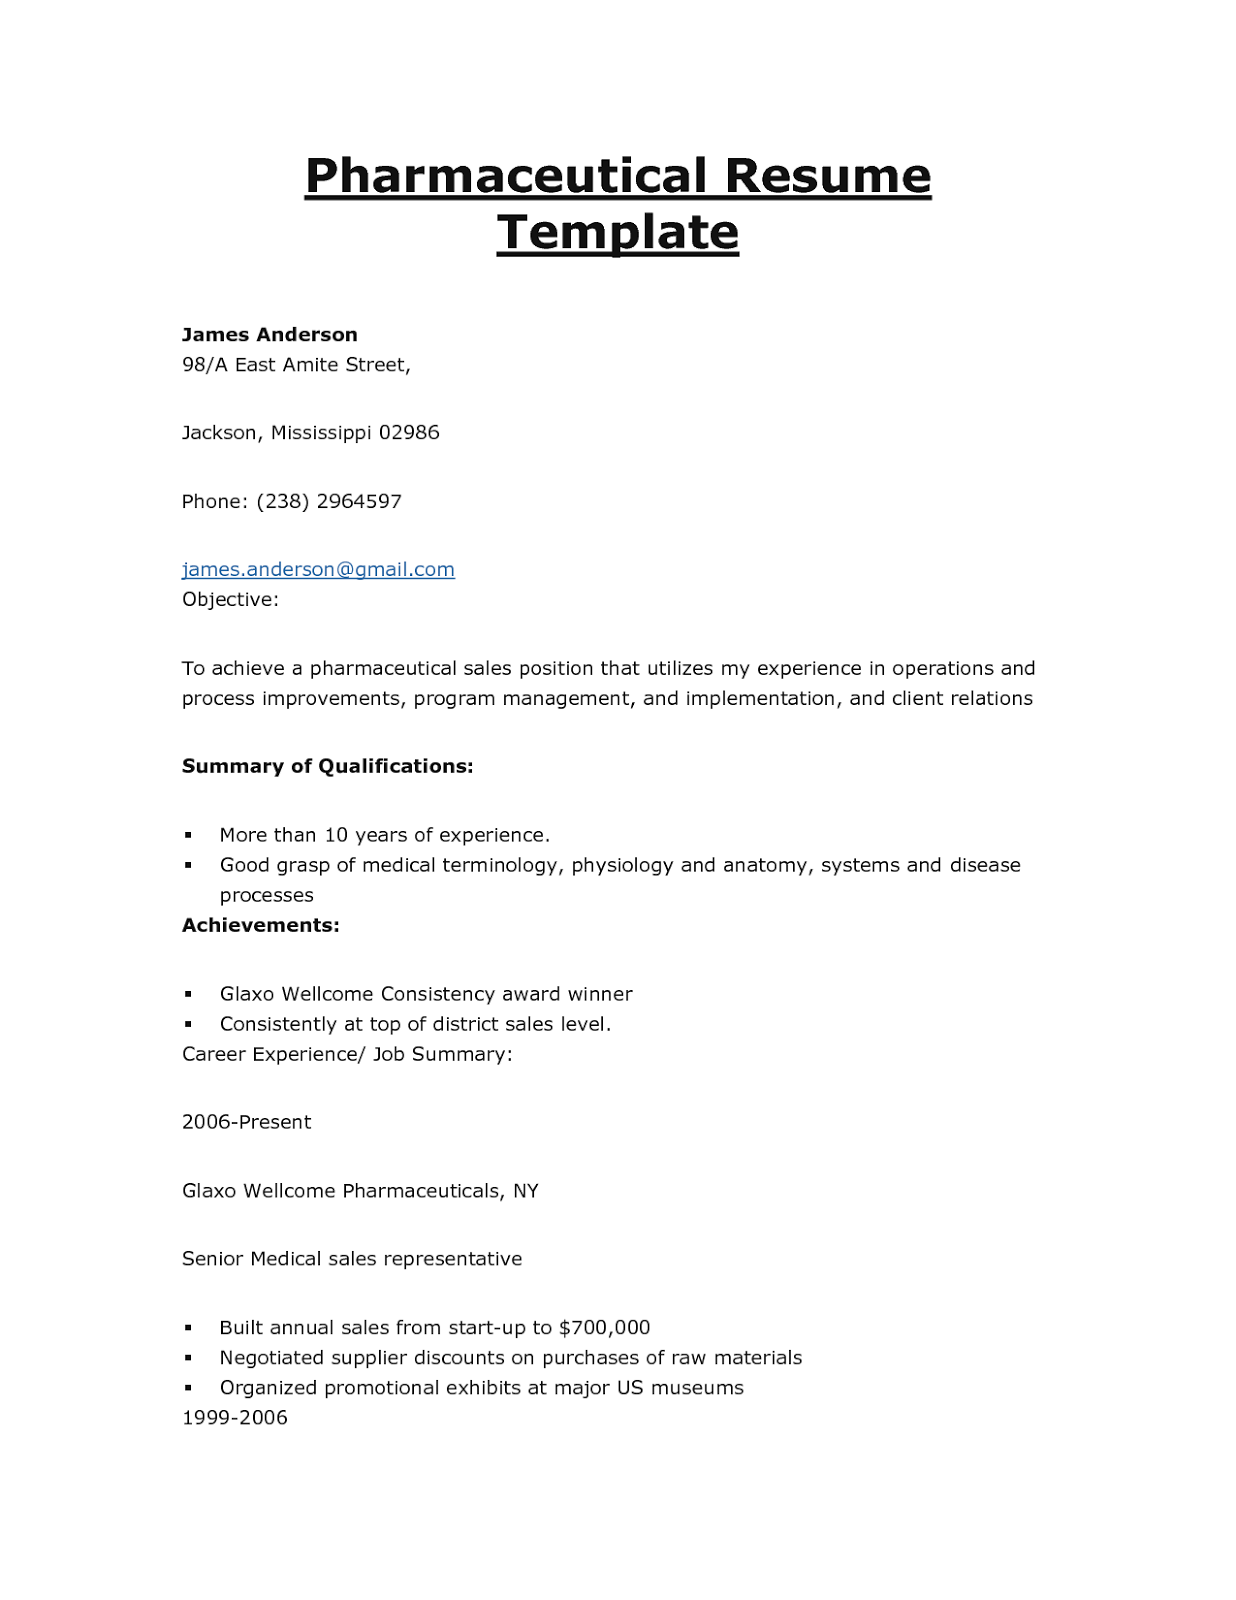 cover letter sales - Cover Letter For Medical Sales Representative